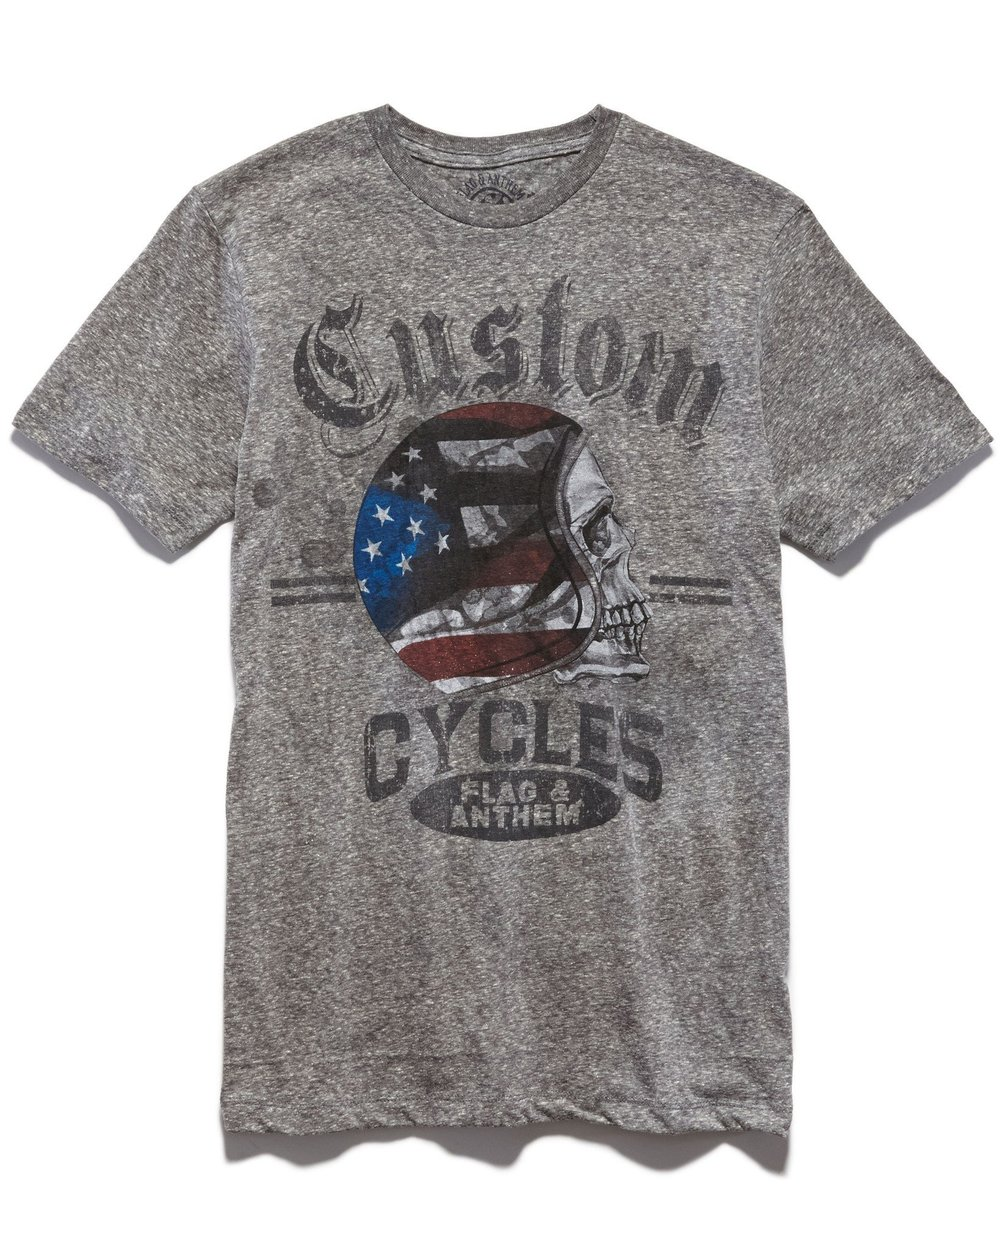 Custom Cycles Tee $24.50